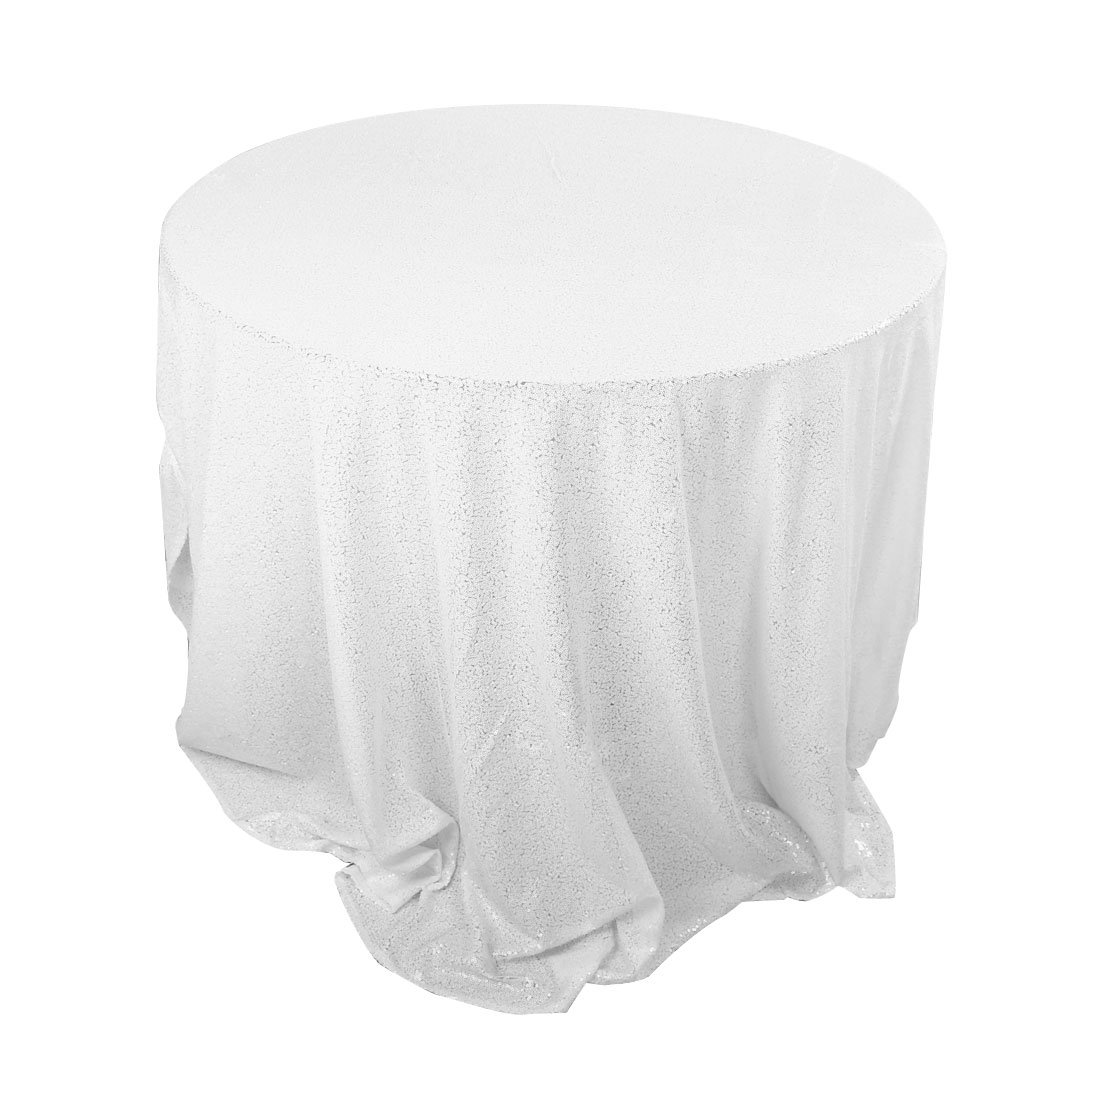 uxcell Piccocasa Polyester Round Sparkle Sequin Tablecloth Cover Water Oil Resistant 48 for Wedding Party Decor a17021000ux0078